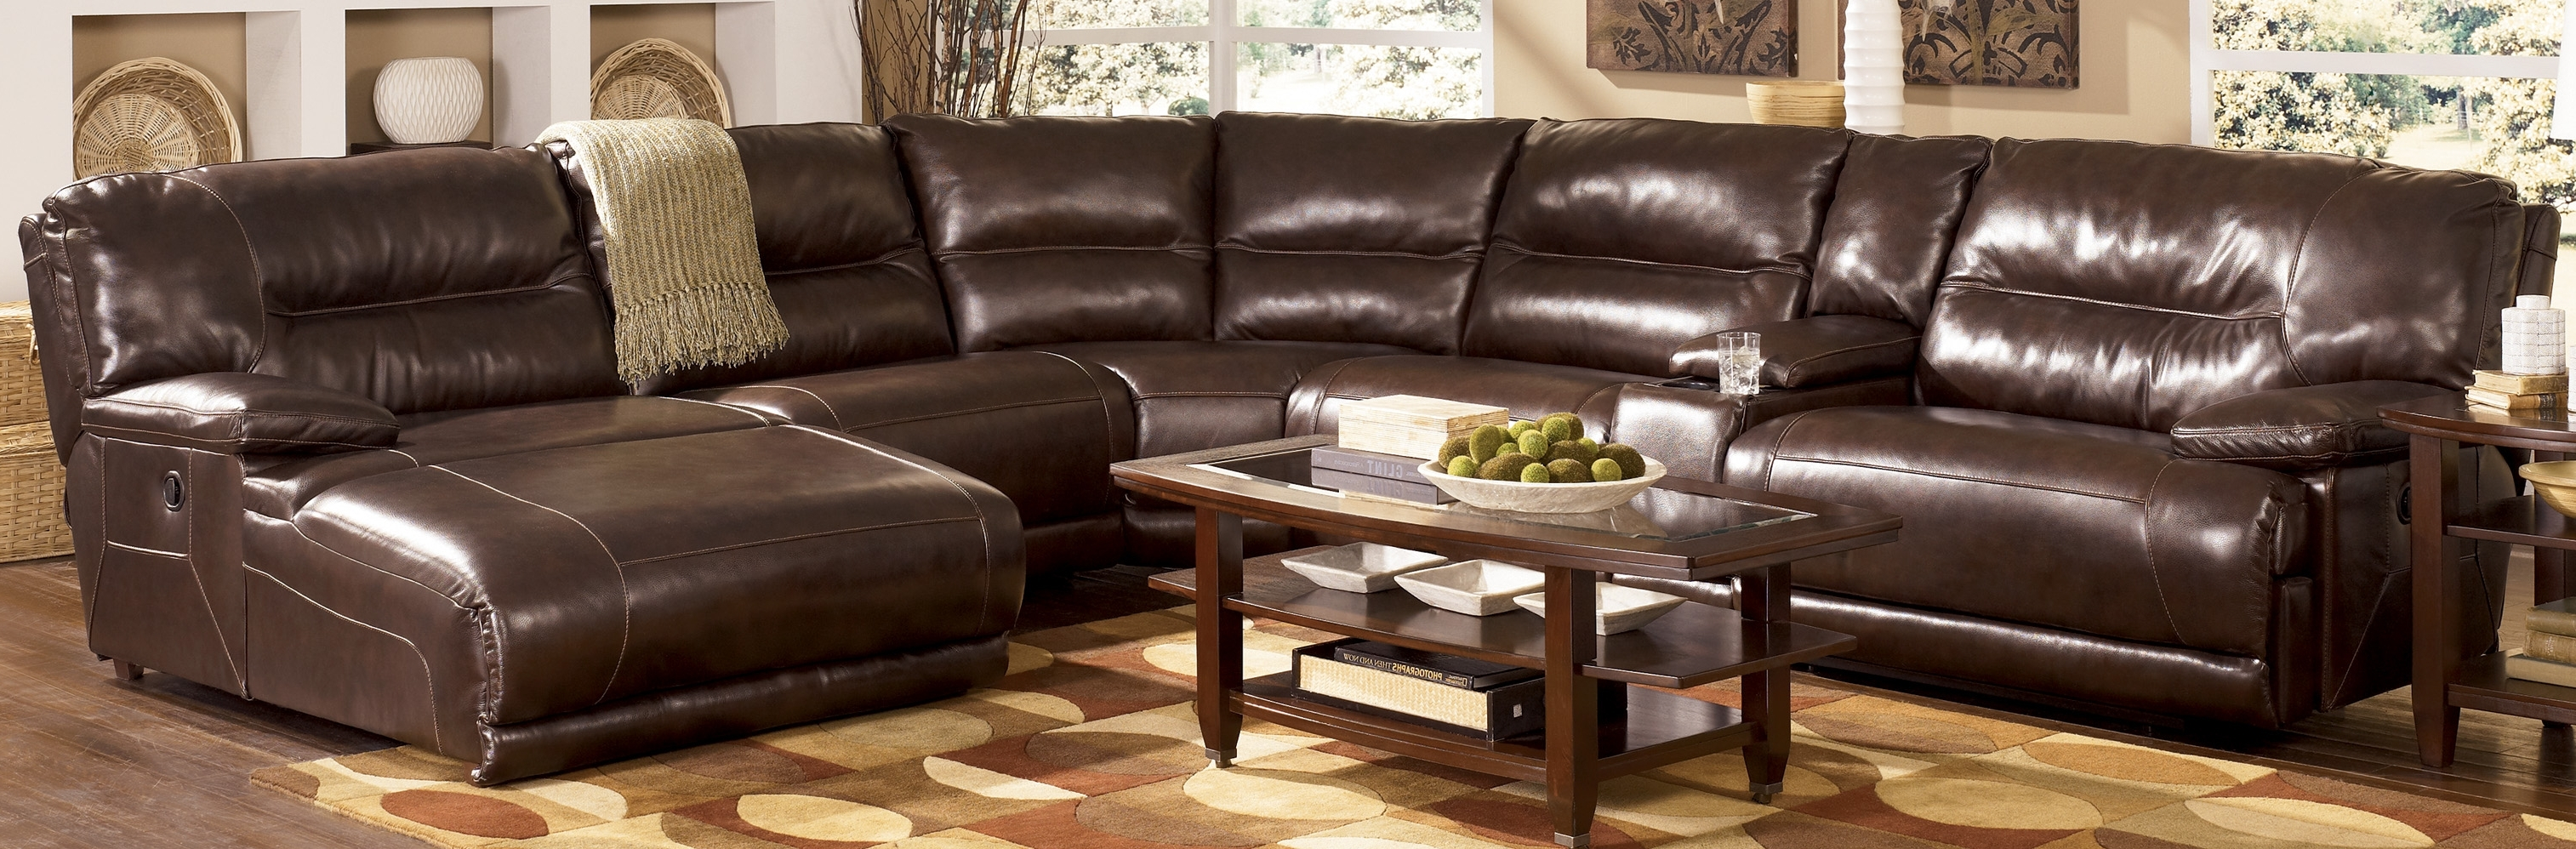 Awesome Ashley Red Leather Sectional Contemporary – Liltigertoo Intended For Most Recent Red Faux Leather Sectionals (View 4 of 20)